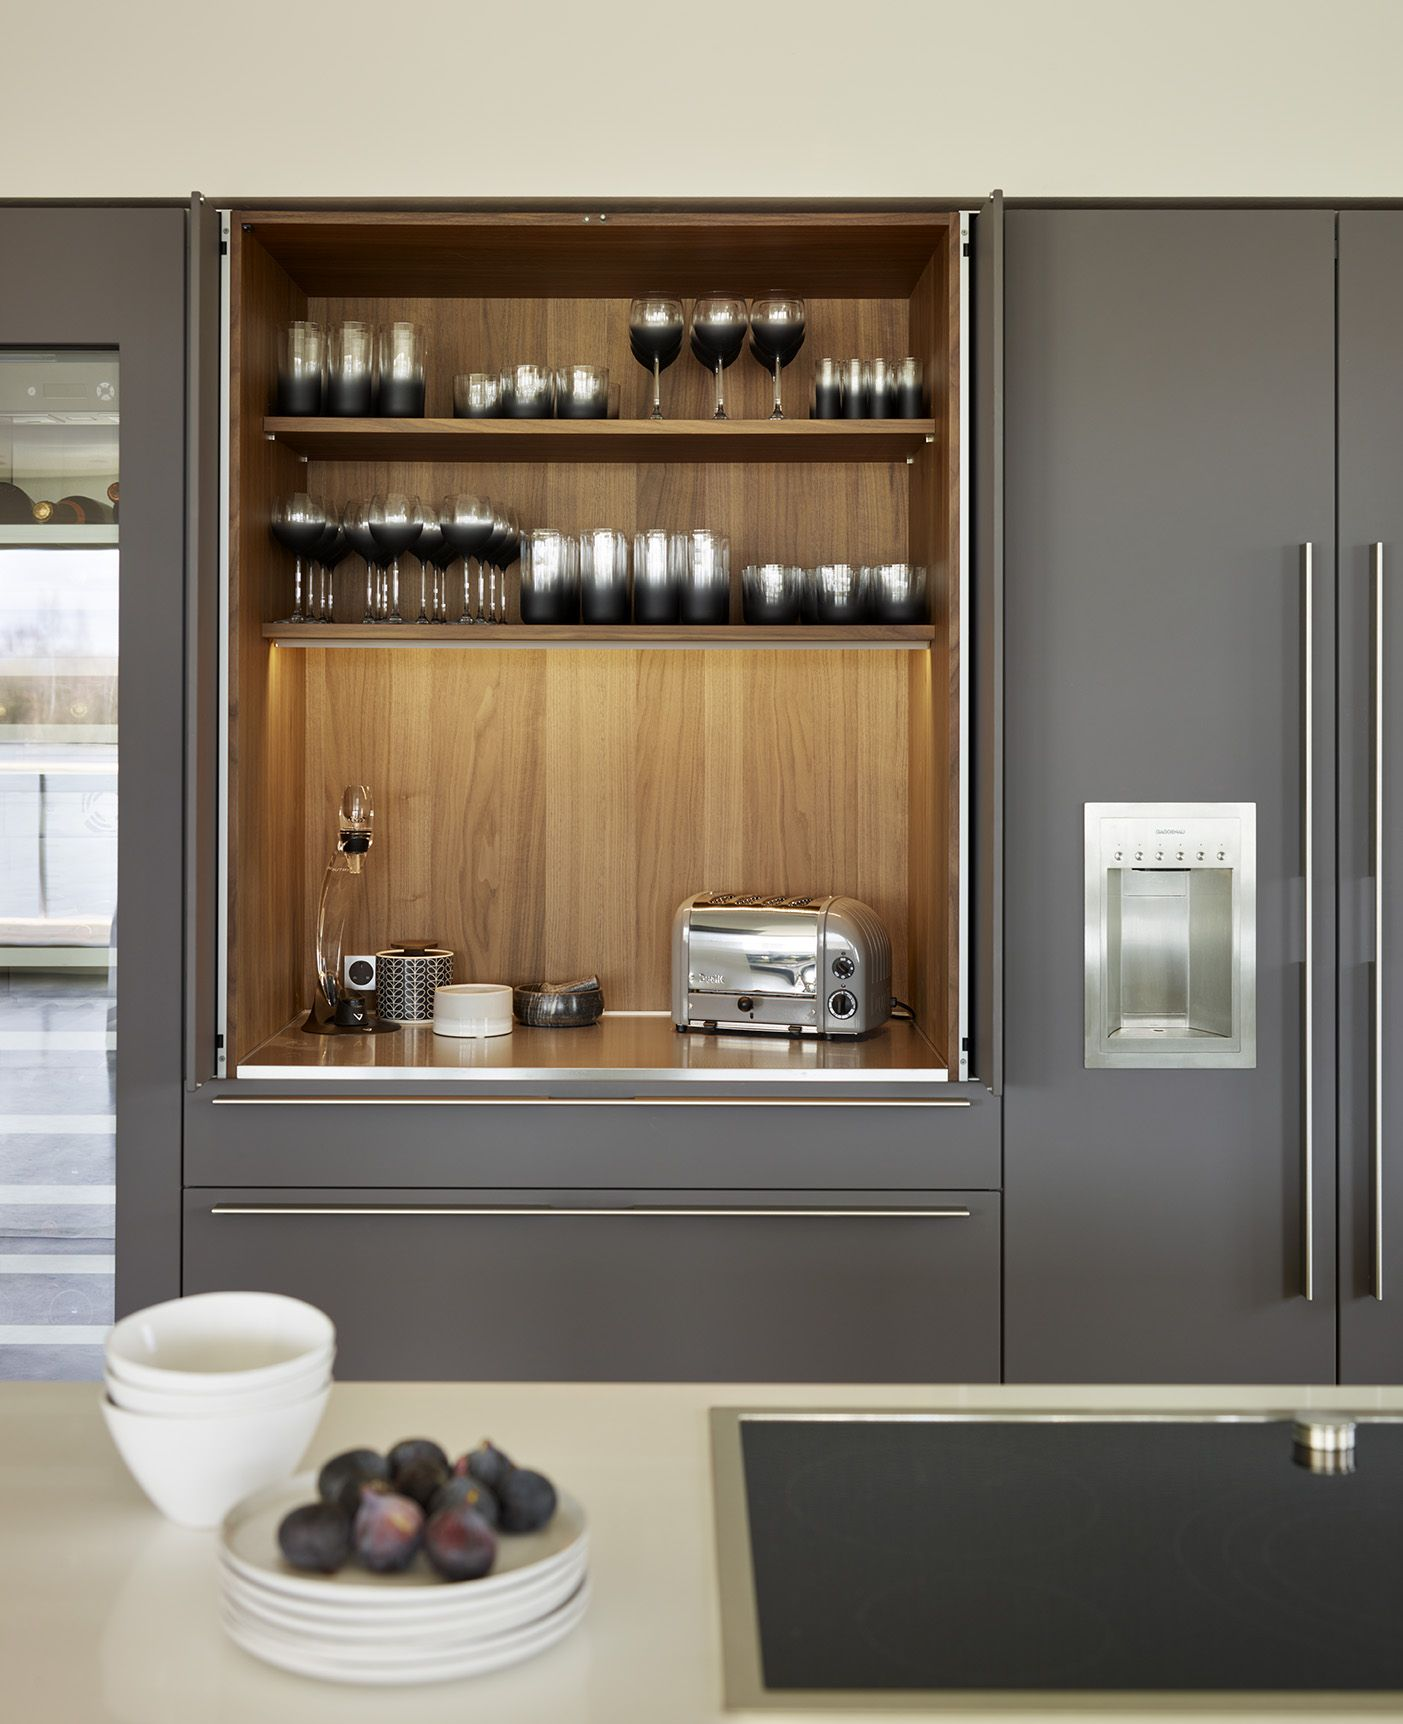 walnut veneer interior of the bulthaup pocket door with soft touch 39 lava 39 referentes job. Black Bedroom Furniture Sets. Home Design Ideas